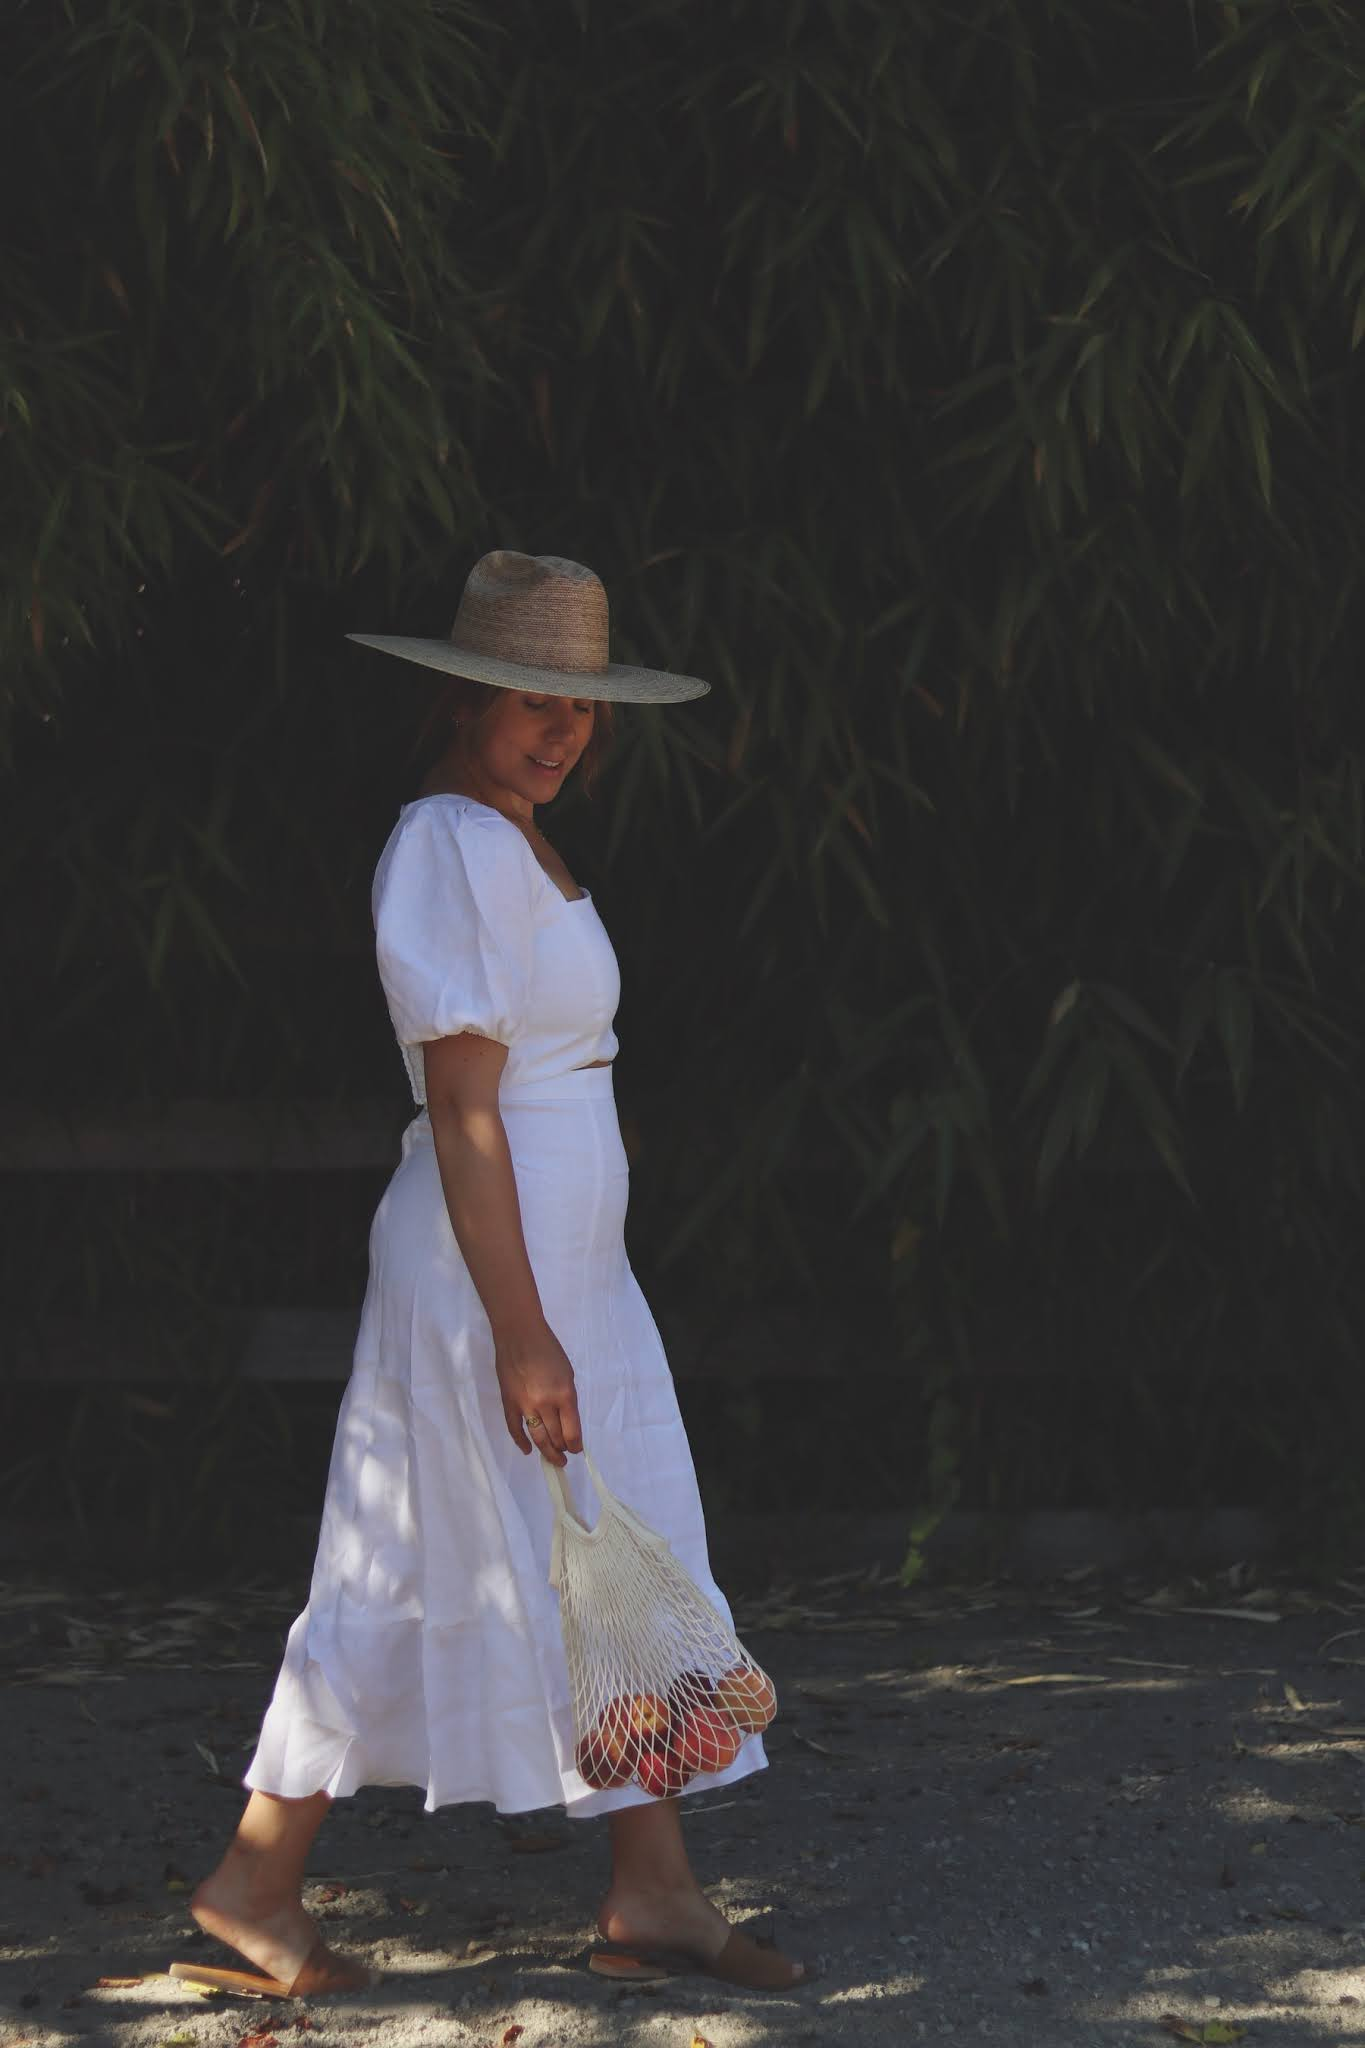 reformation linen two piece lack of color palm hat summer white outfit